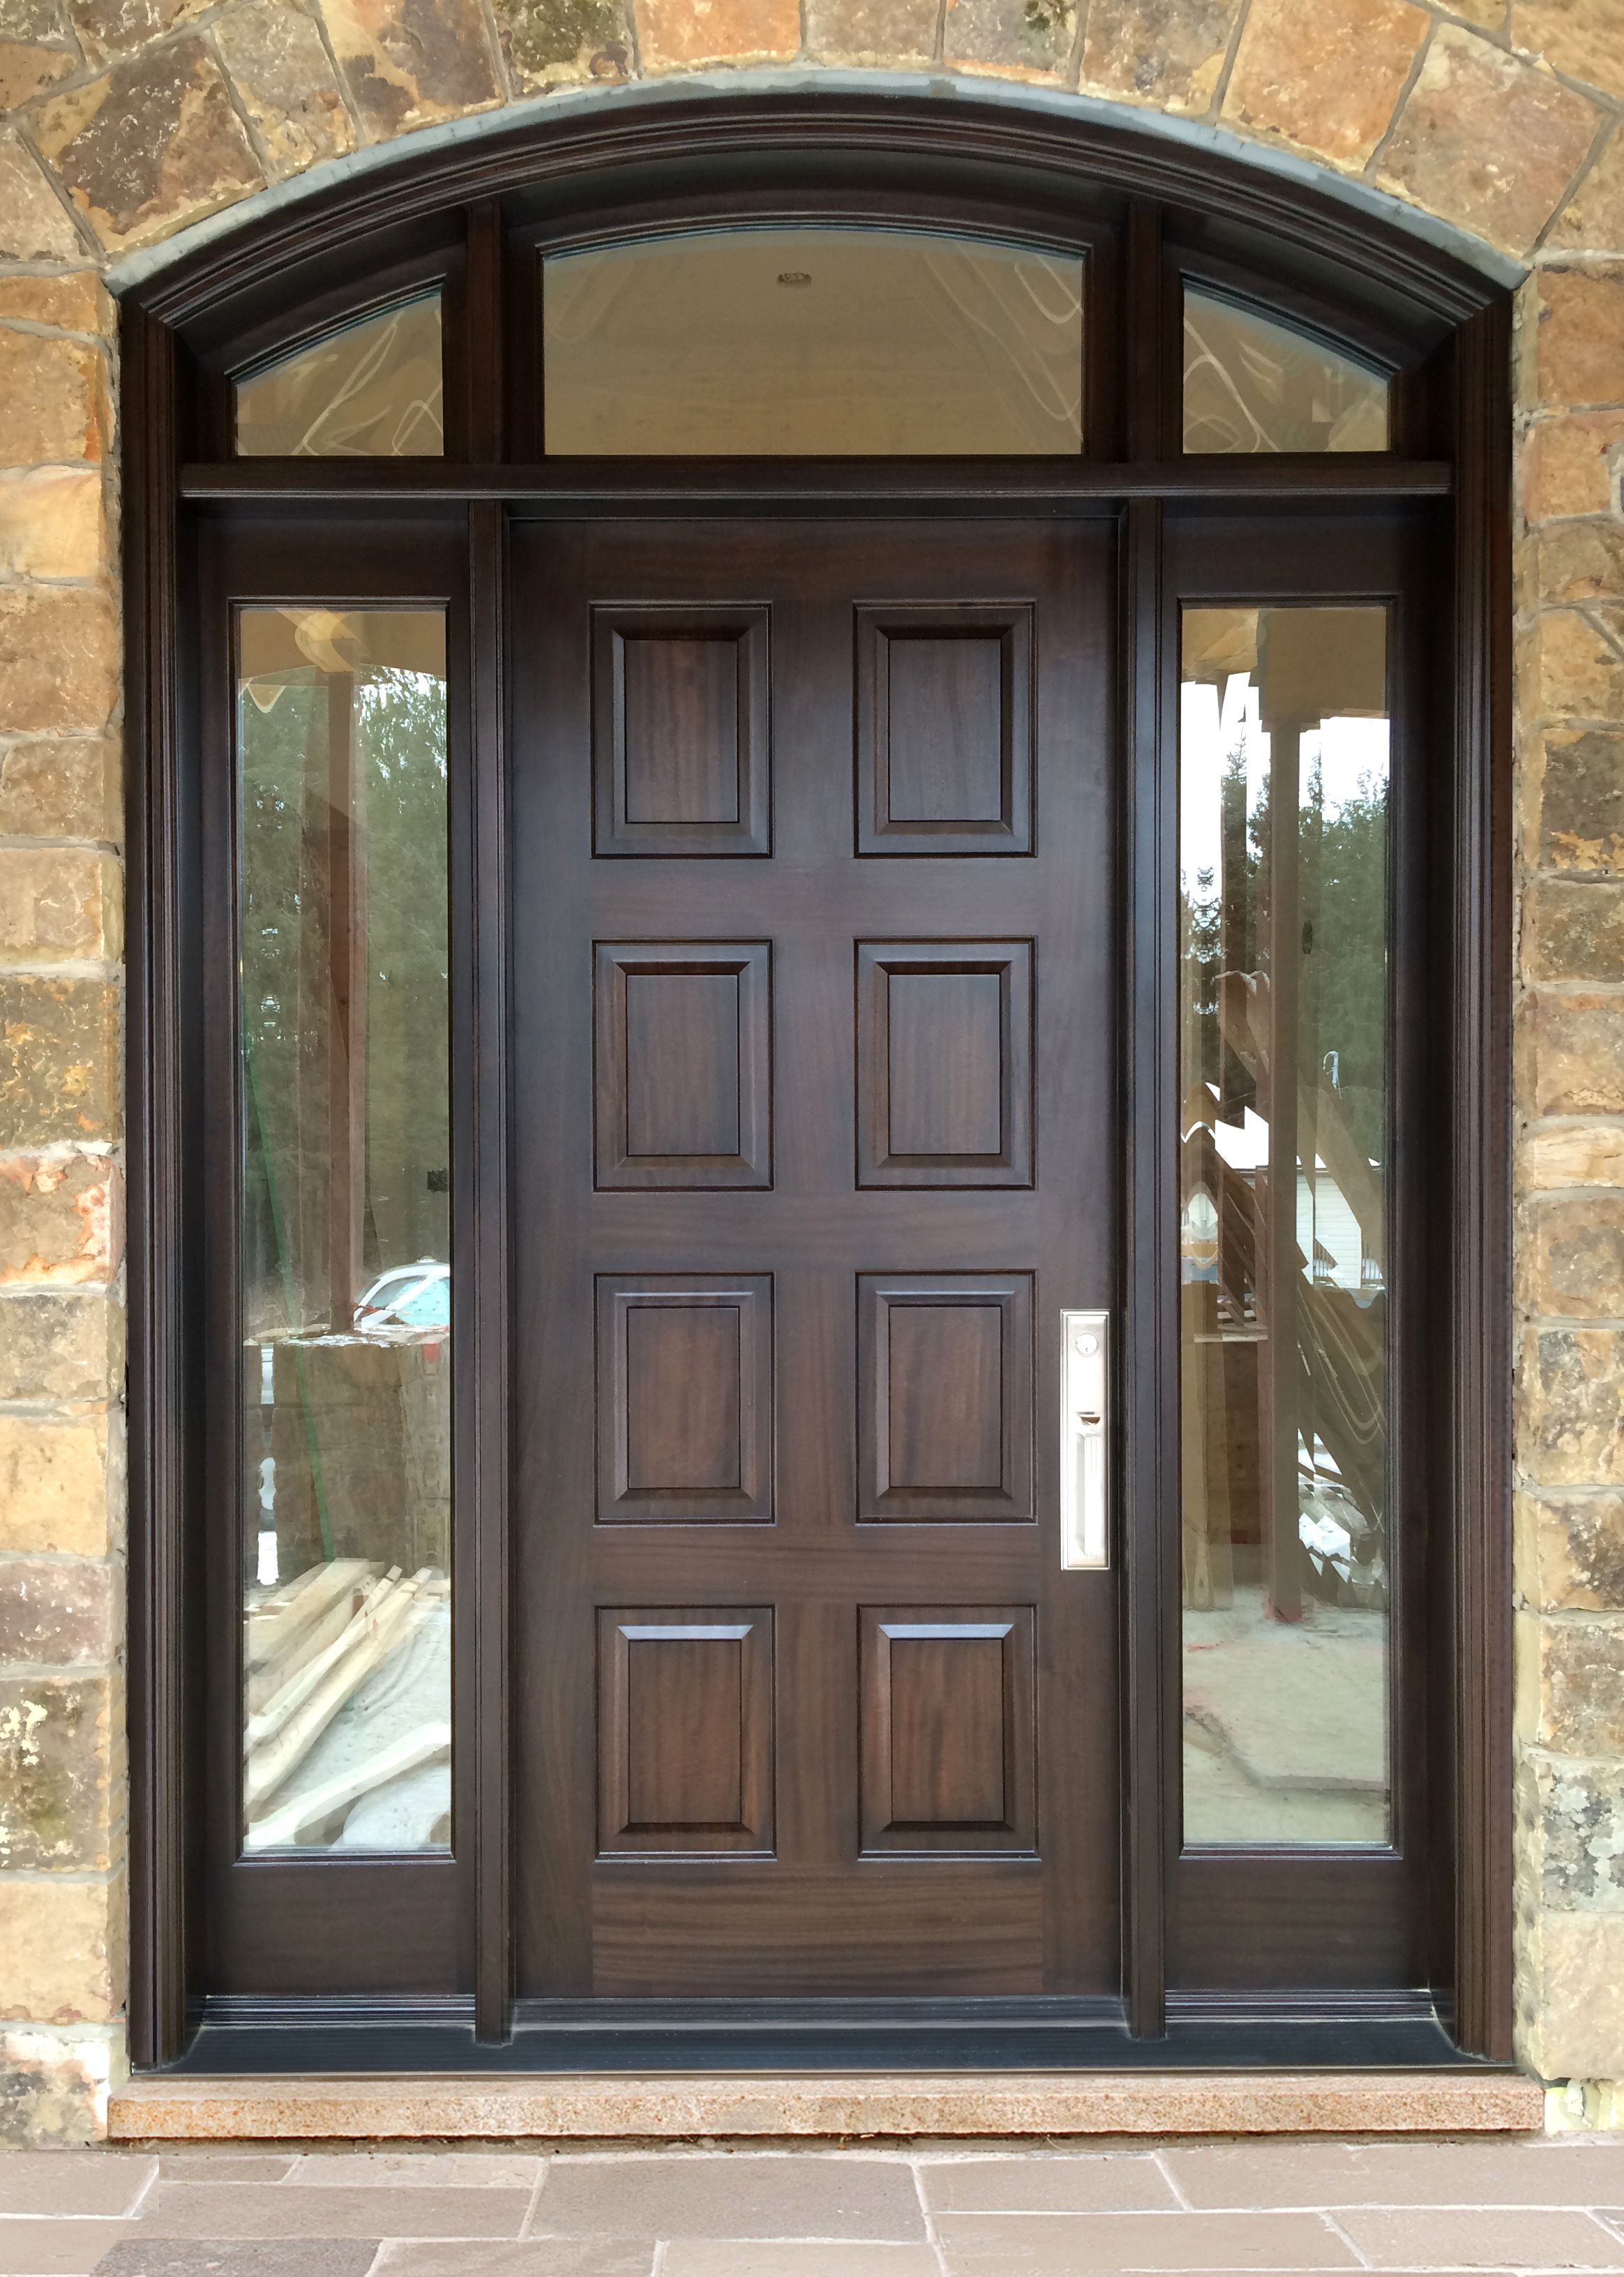 Amberwood Doors Inc: This Home Owner Is Ecstatic About Their #elegant